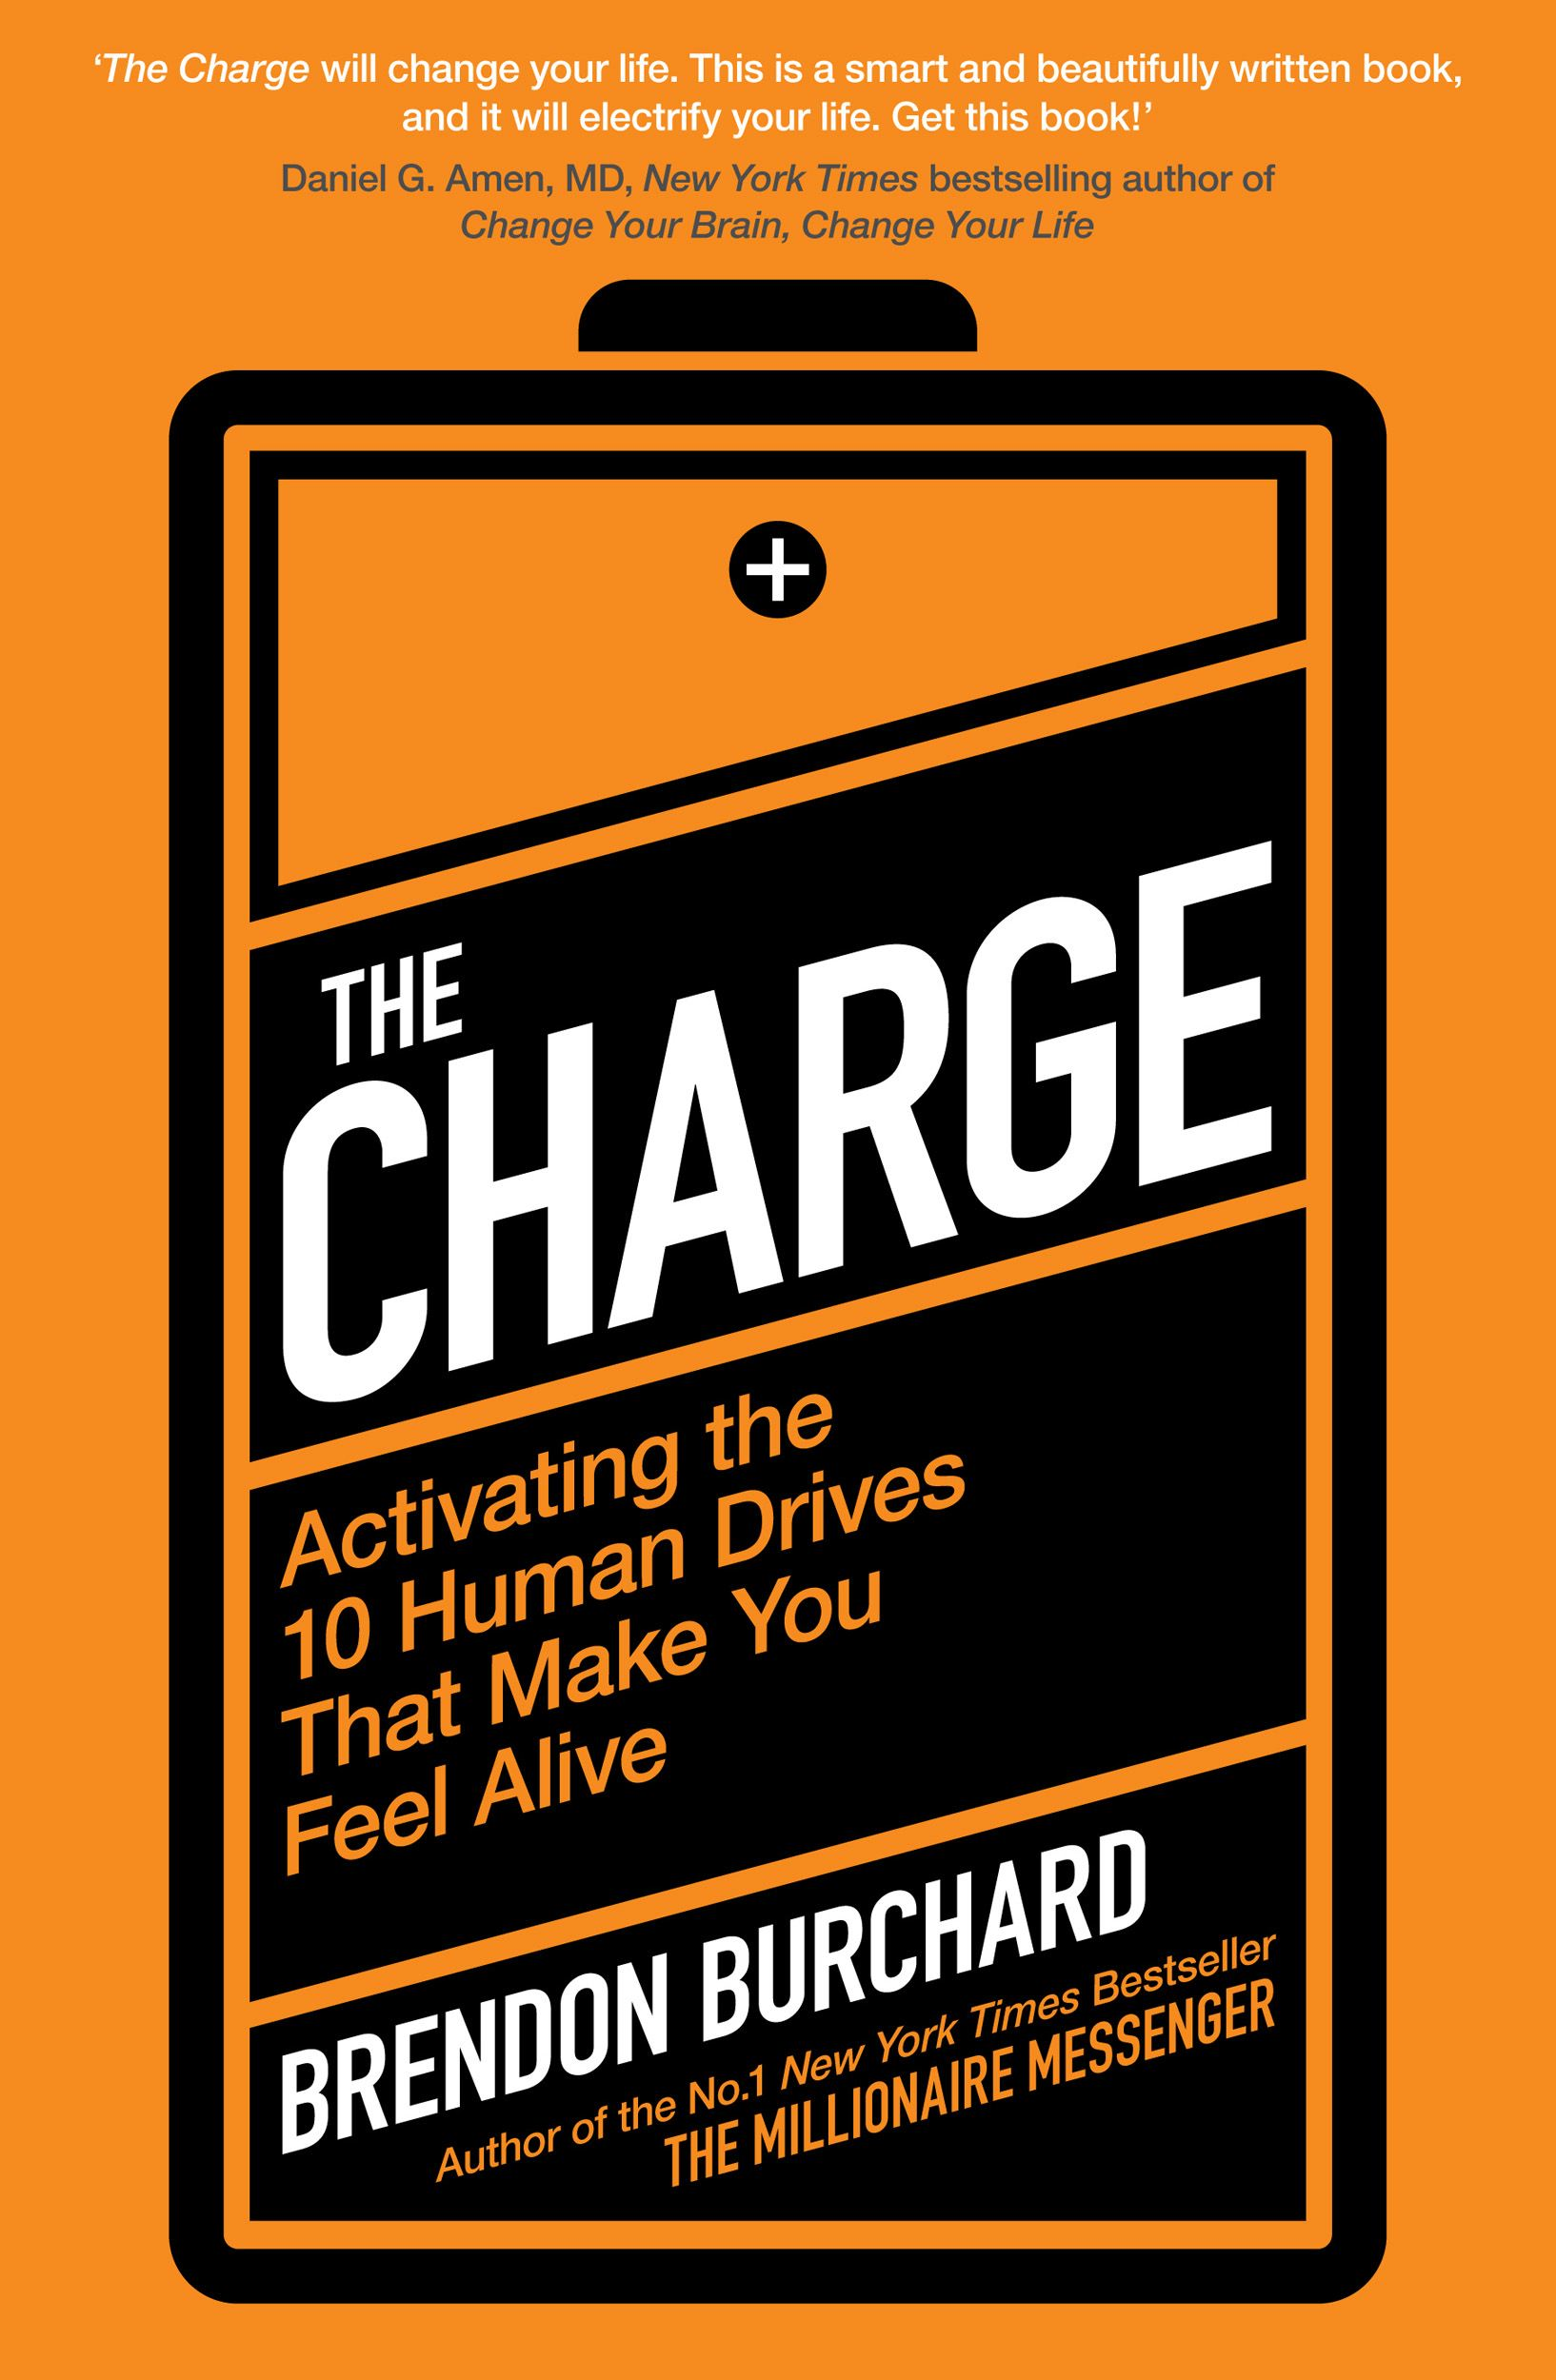 The Charge Activating the 10 Human Drives That Make You Feel Alive